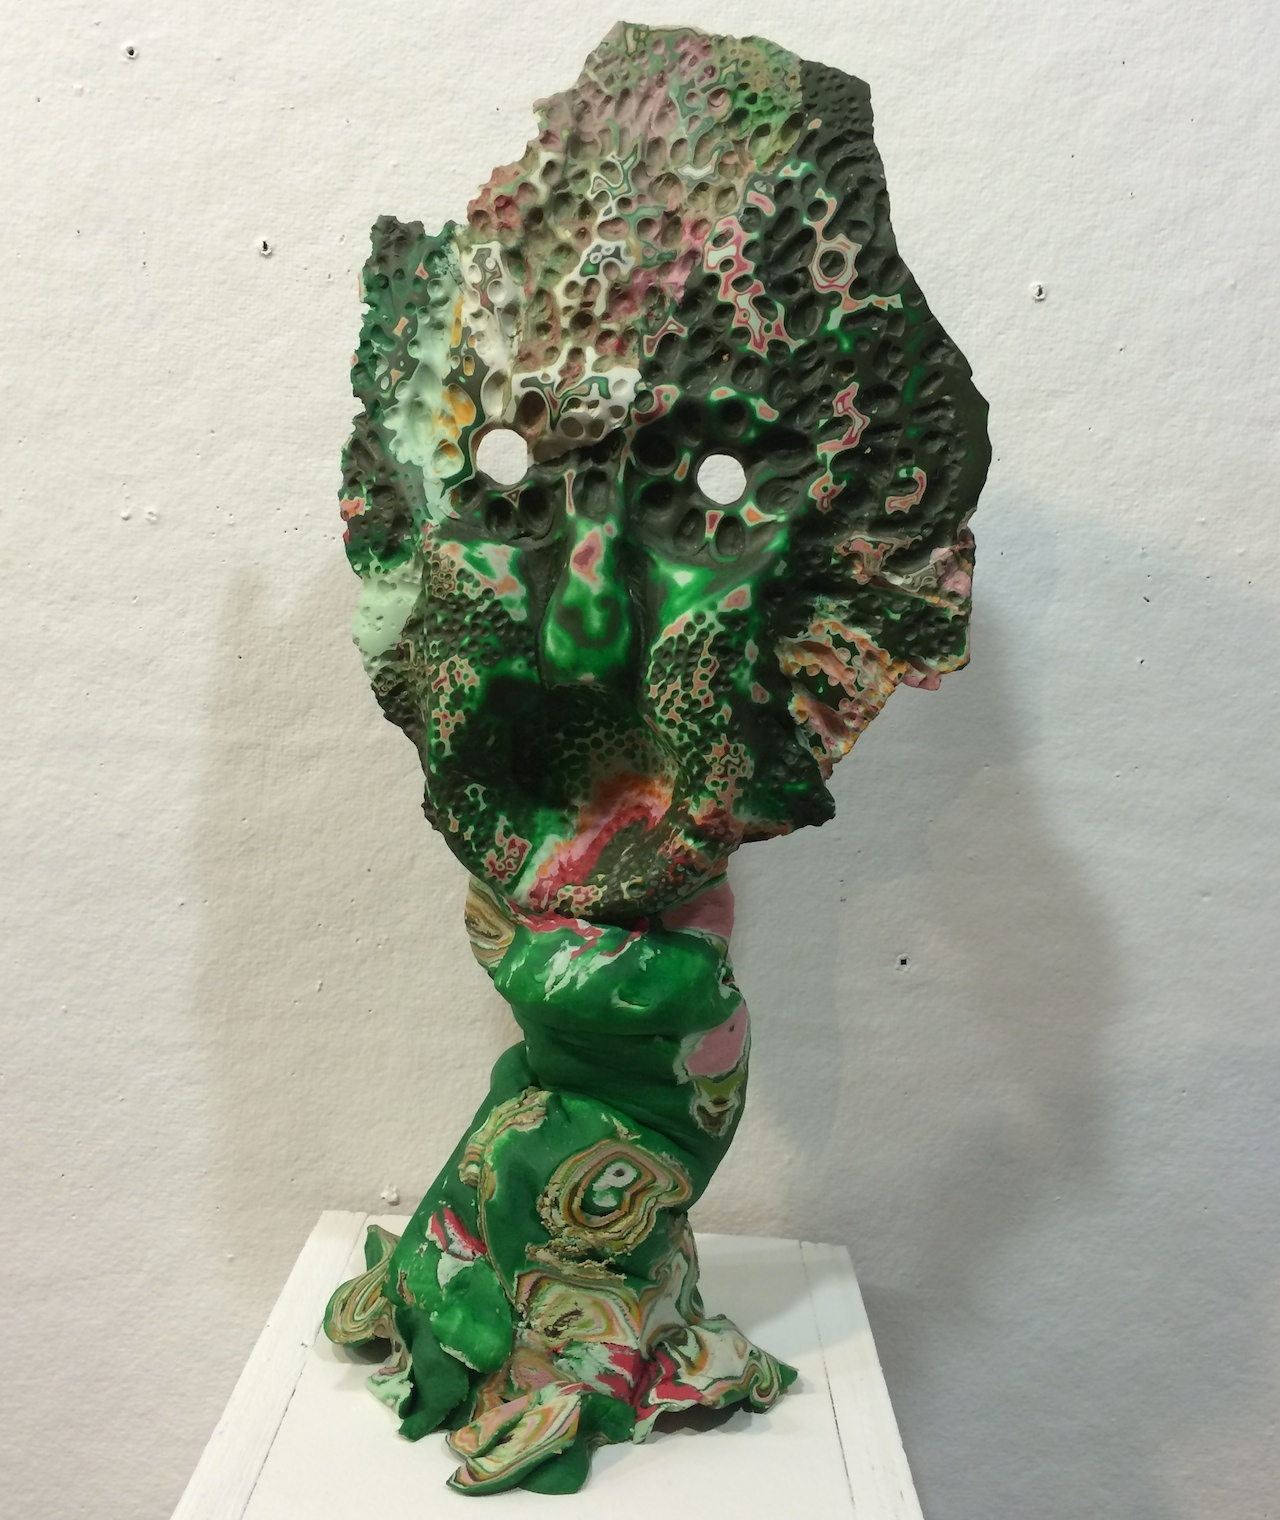 A sculpture by Daniel Wiener in a pop-up exhibition at Abby Goldstein's studio at 110 Nevins Street